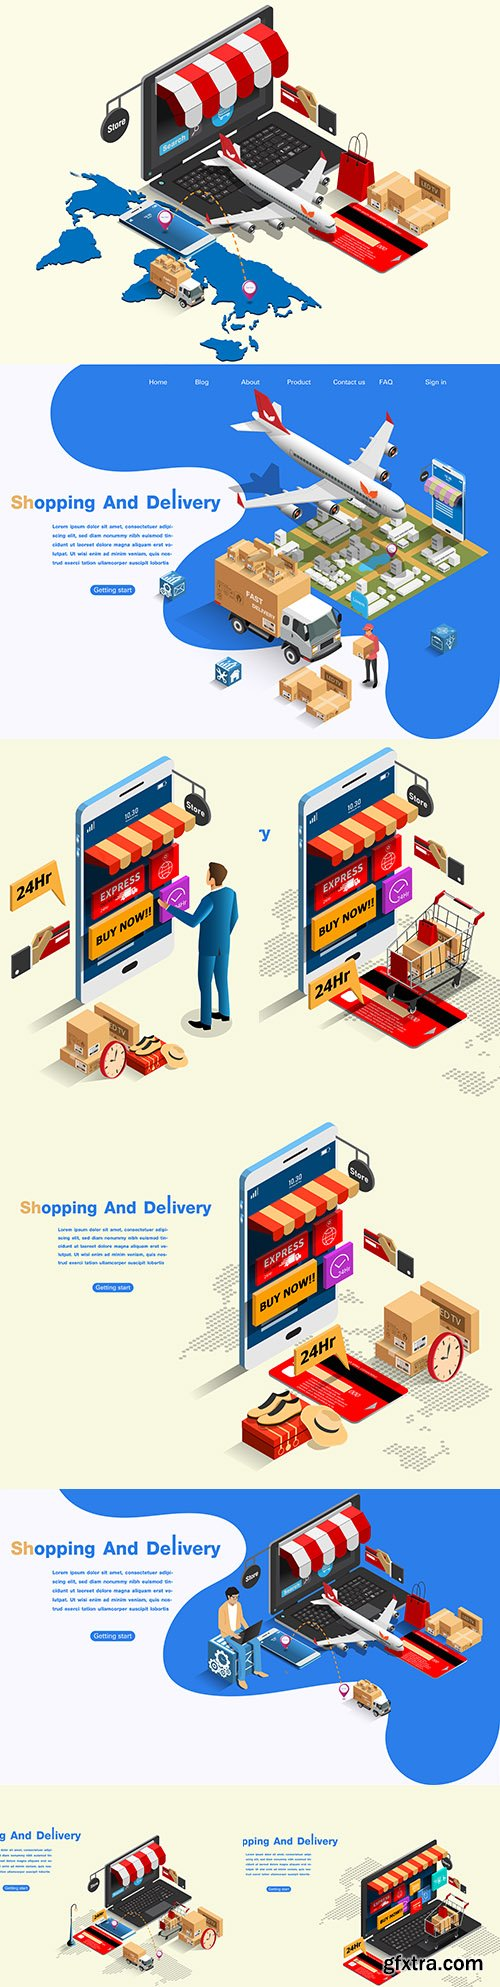 Shopping and shipping online isometric illustration